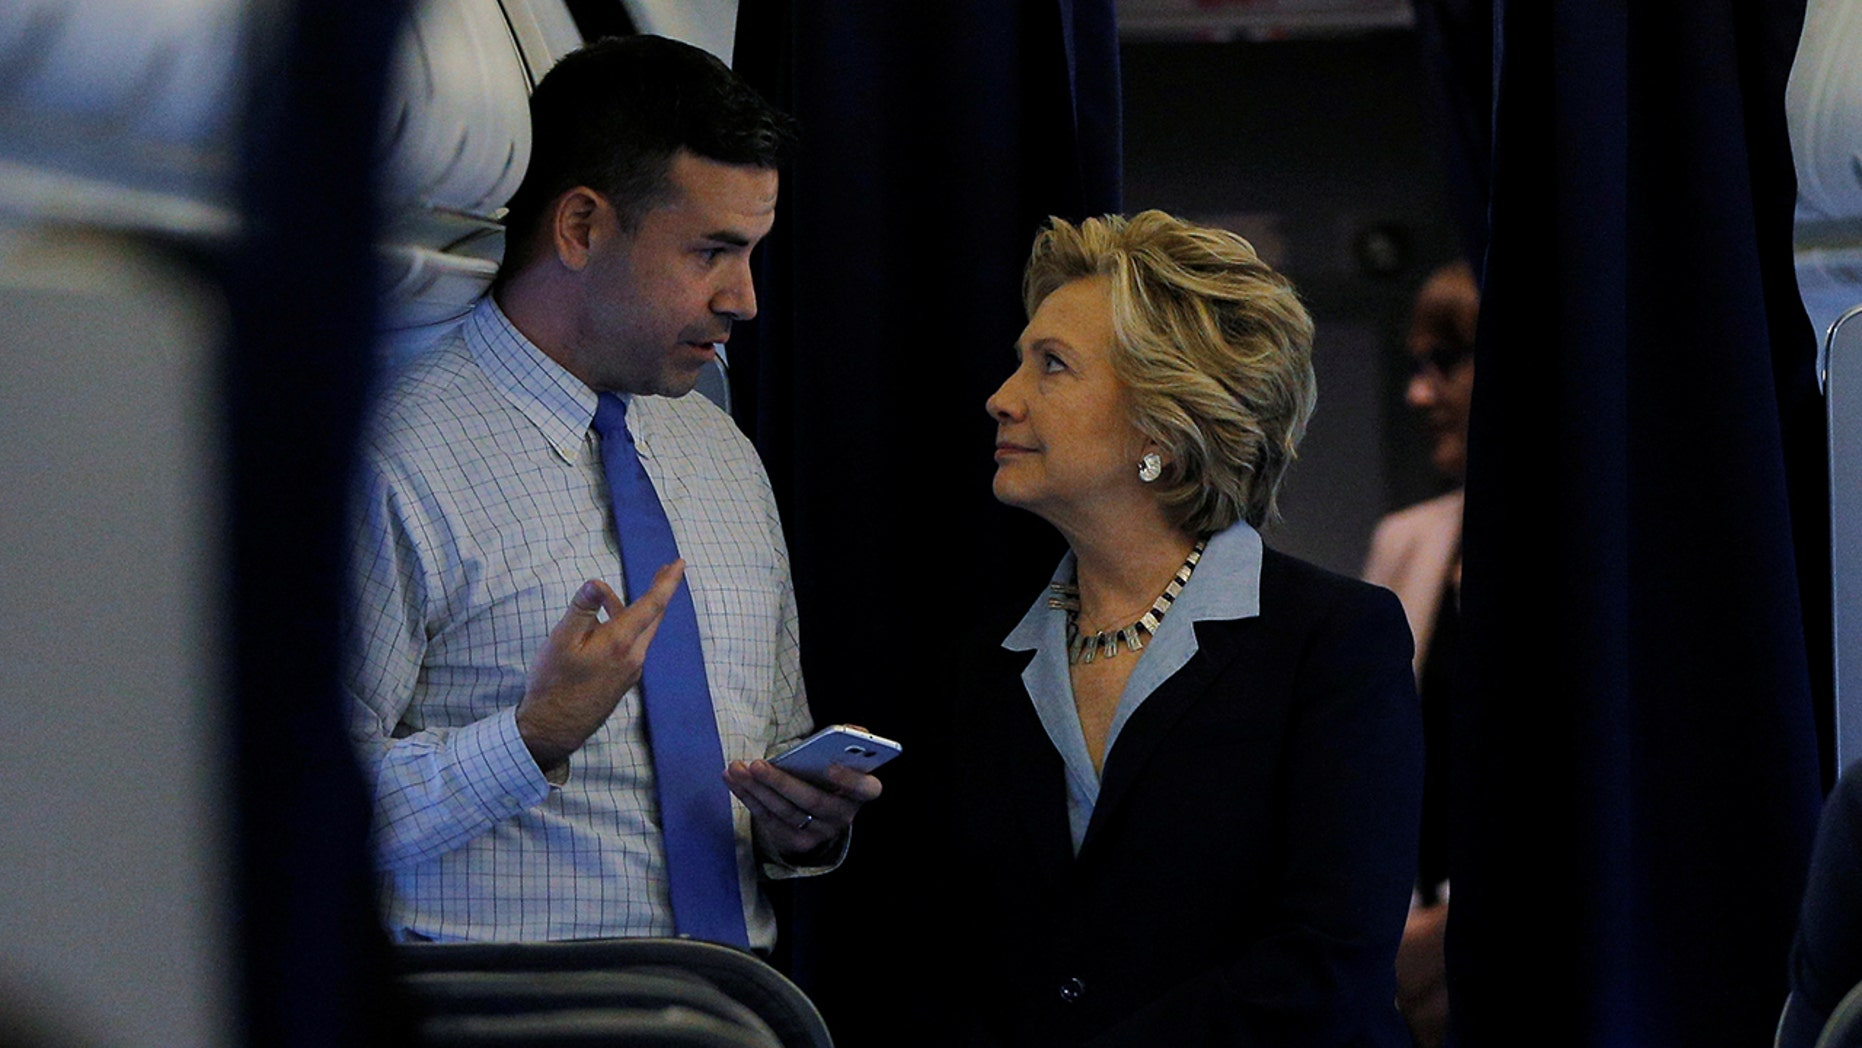 Hillary Clinton and national press secretary Brian Fallon talking onboard her campaign plane in White Plains, New York, in October 2016.